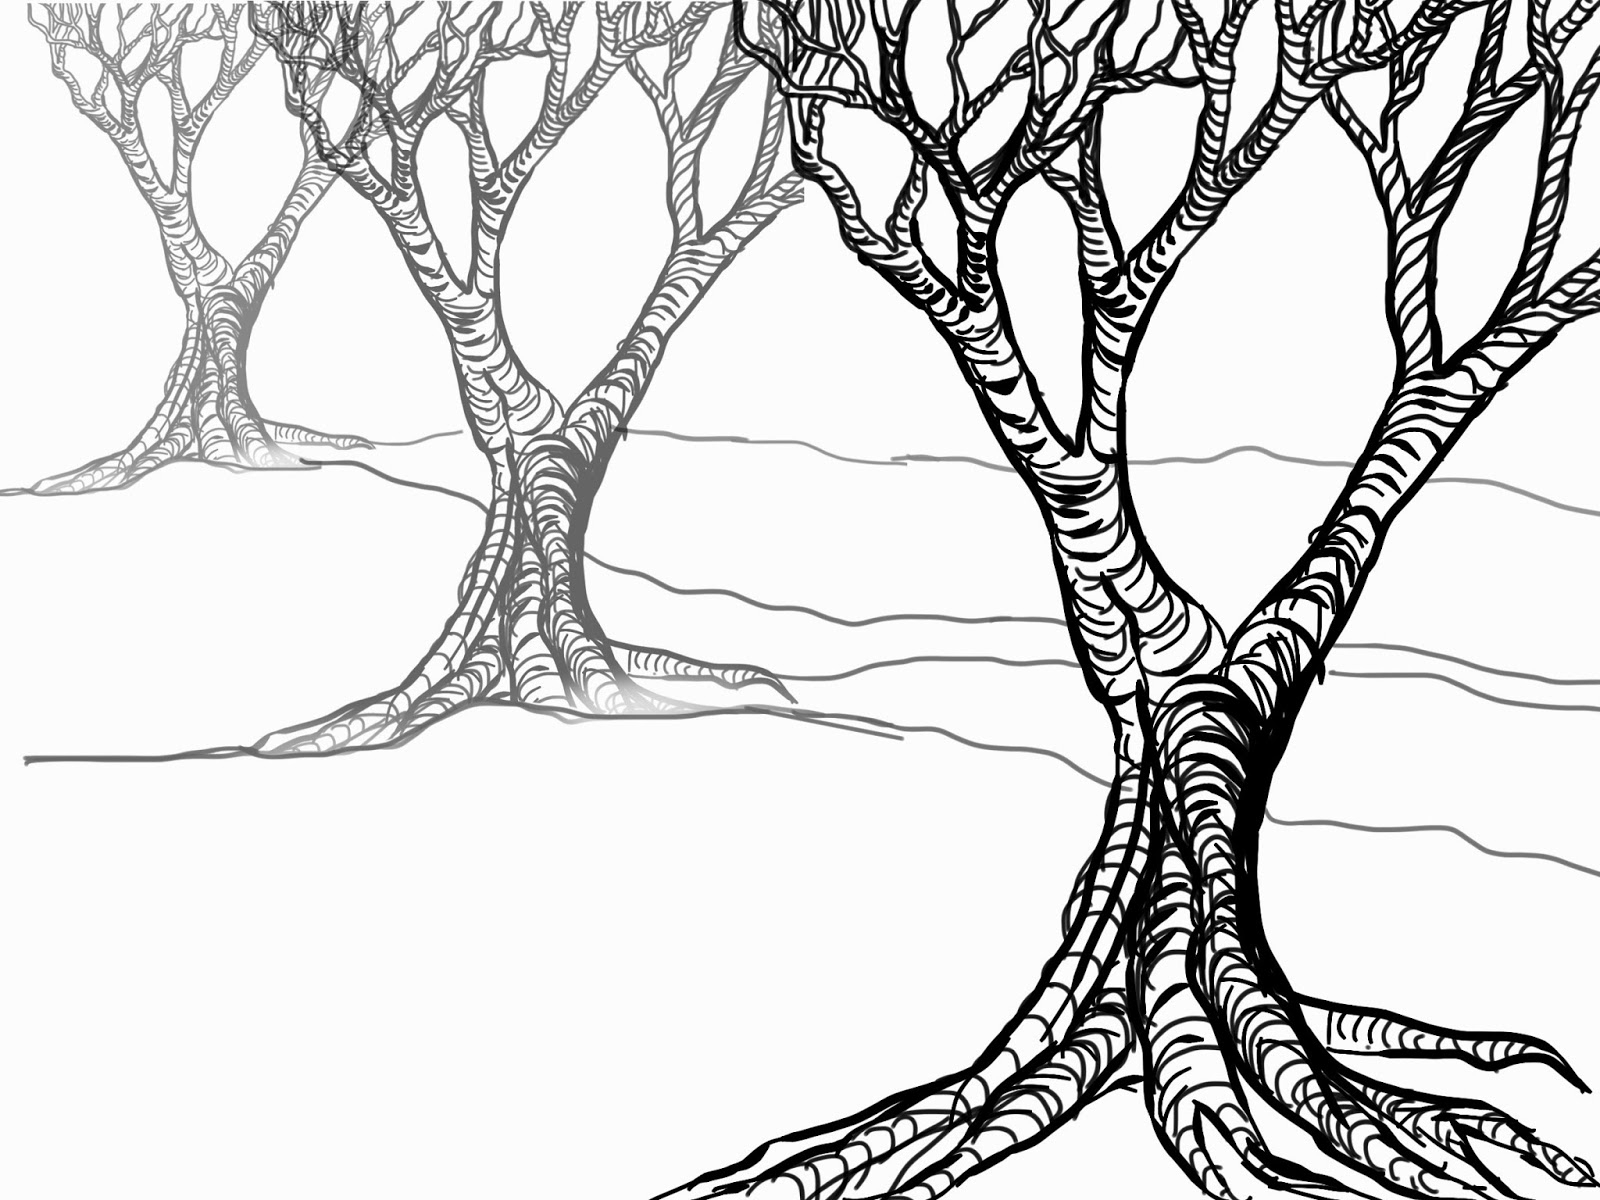 1600x1200 Tree Landscape Drawing Tree Landscape Drawing Landscape Pencil